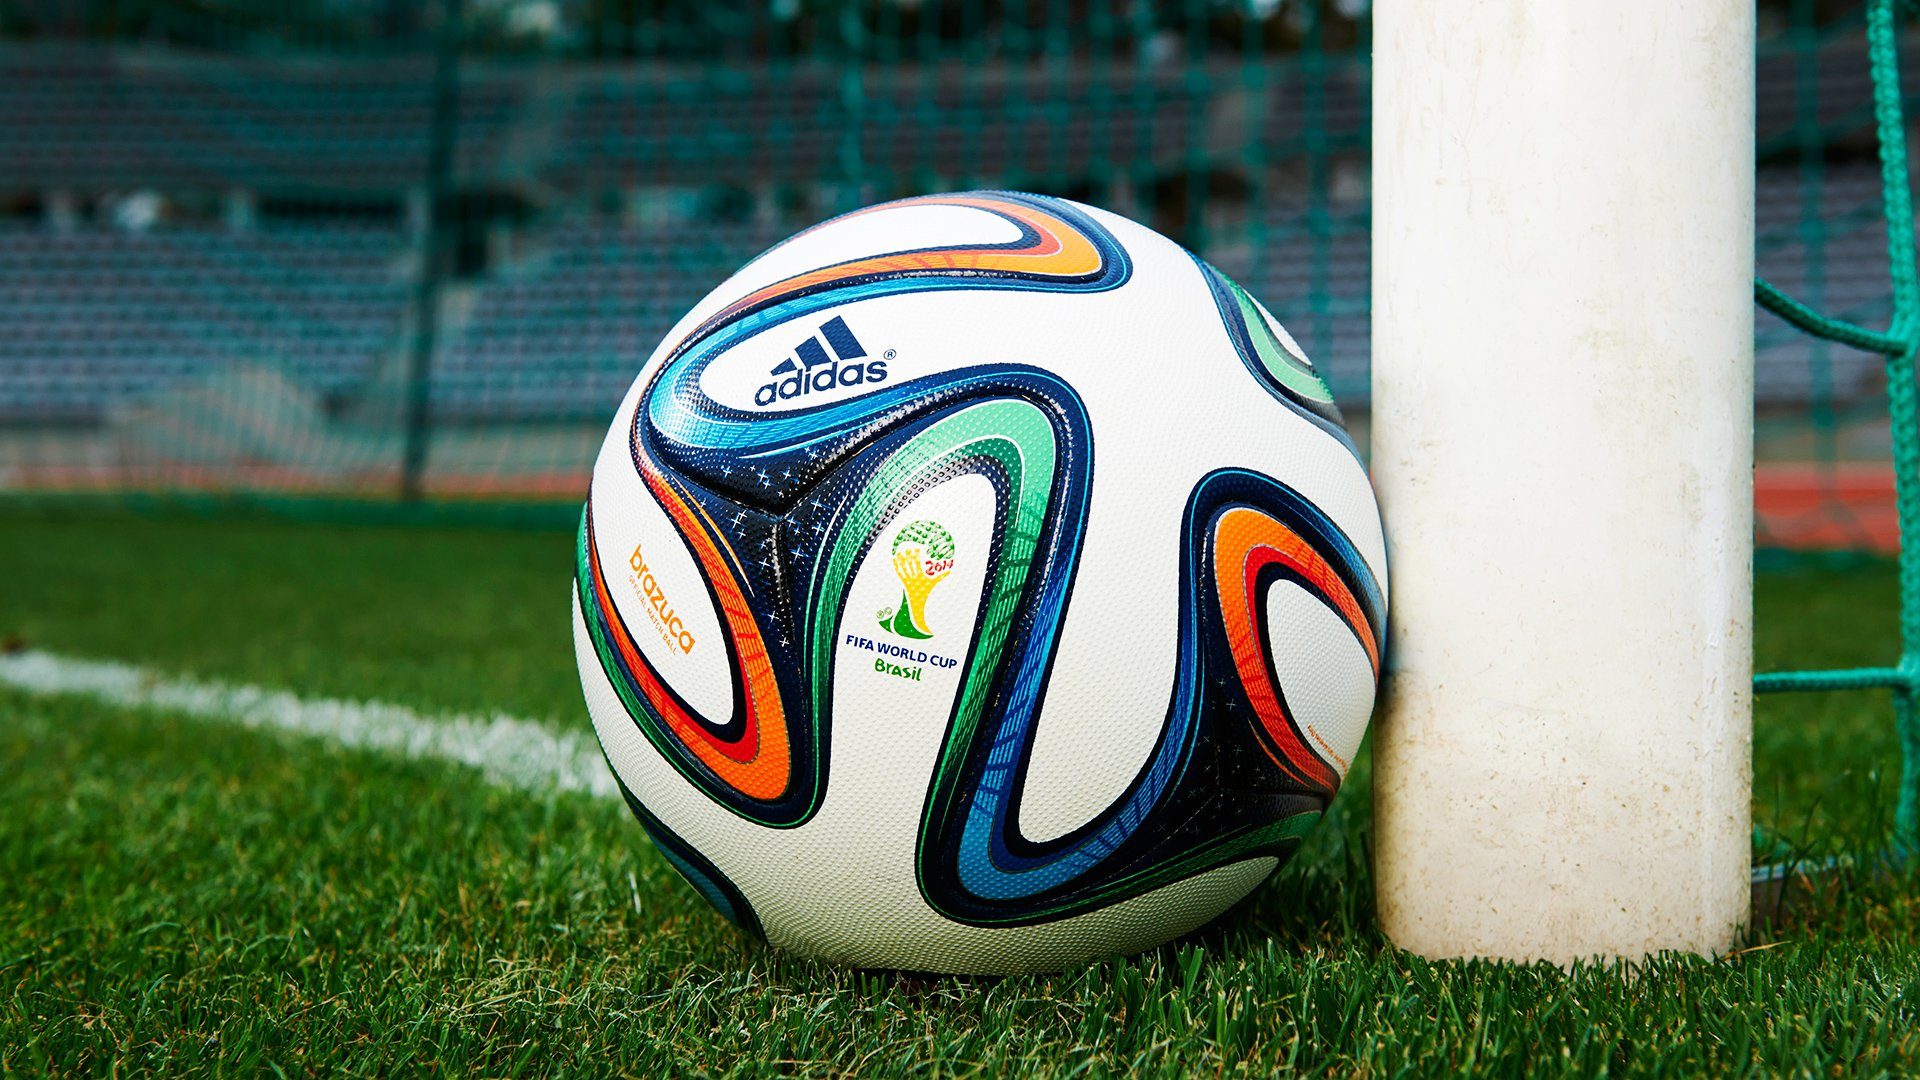 Brazuca-Original-https-www-highdef-com-sports-brazuca-original-Brazuca-Original-is-an-wallpaper-wp3403490